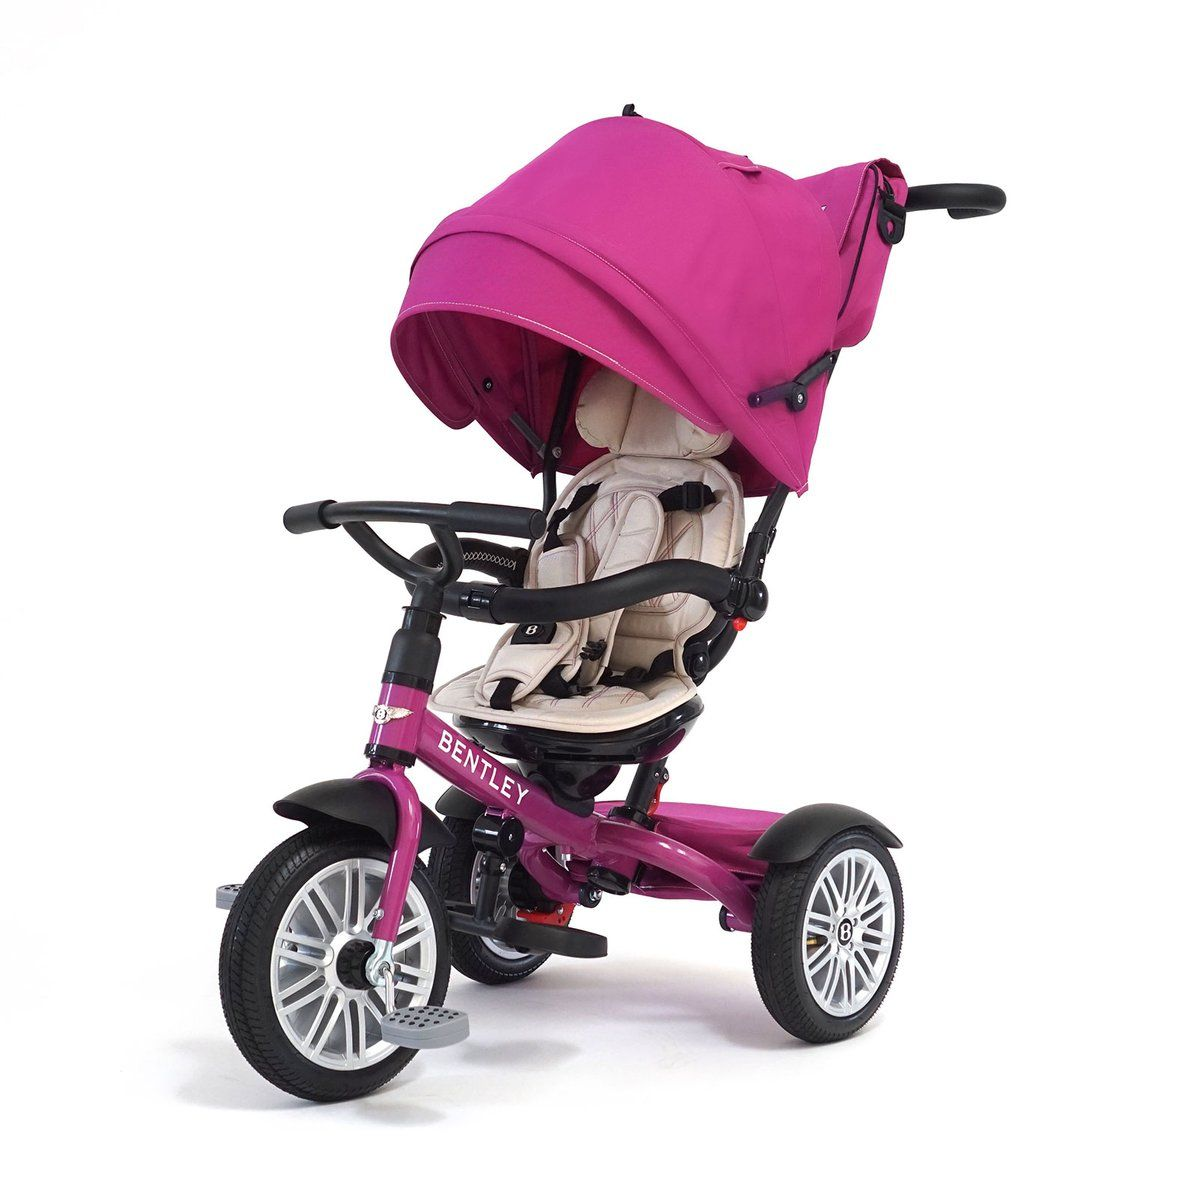 Fuchsia Pink Bentley 6 in 1 Stroller Trike (With images